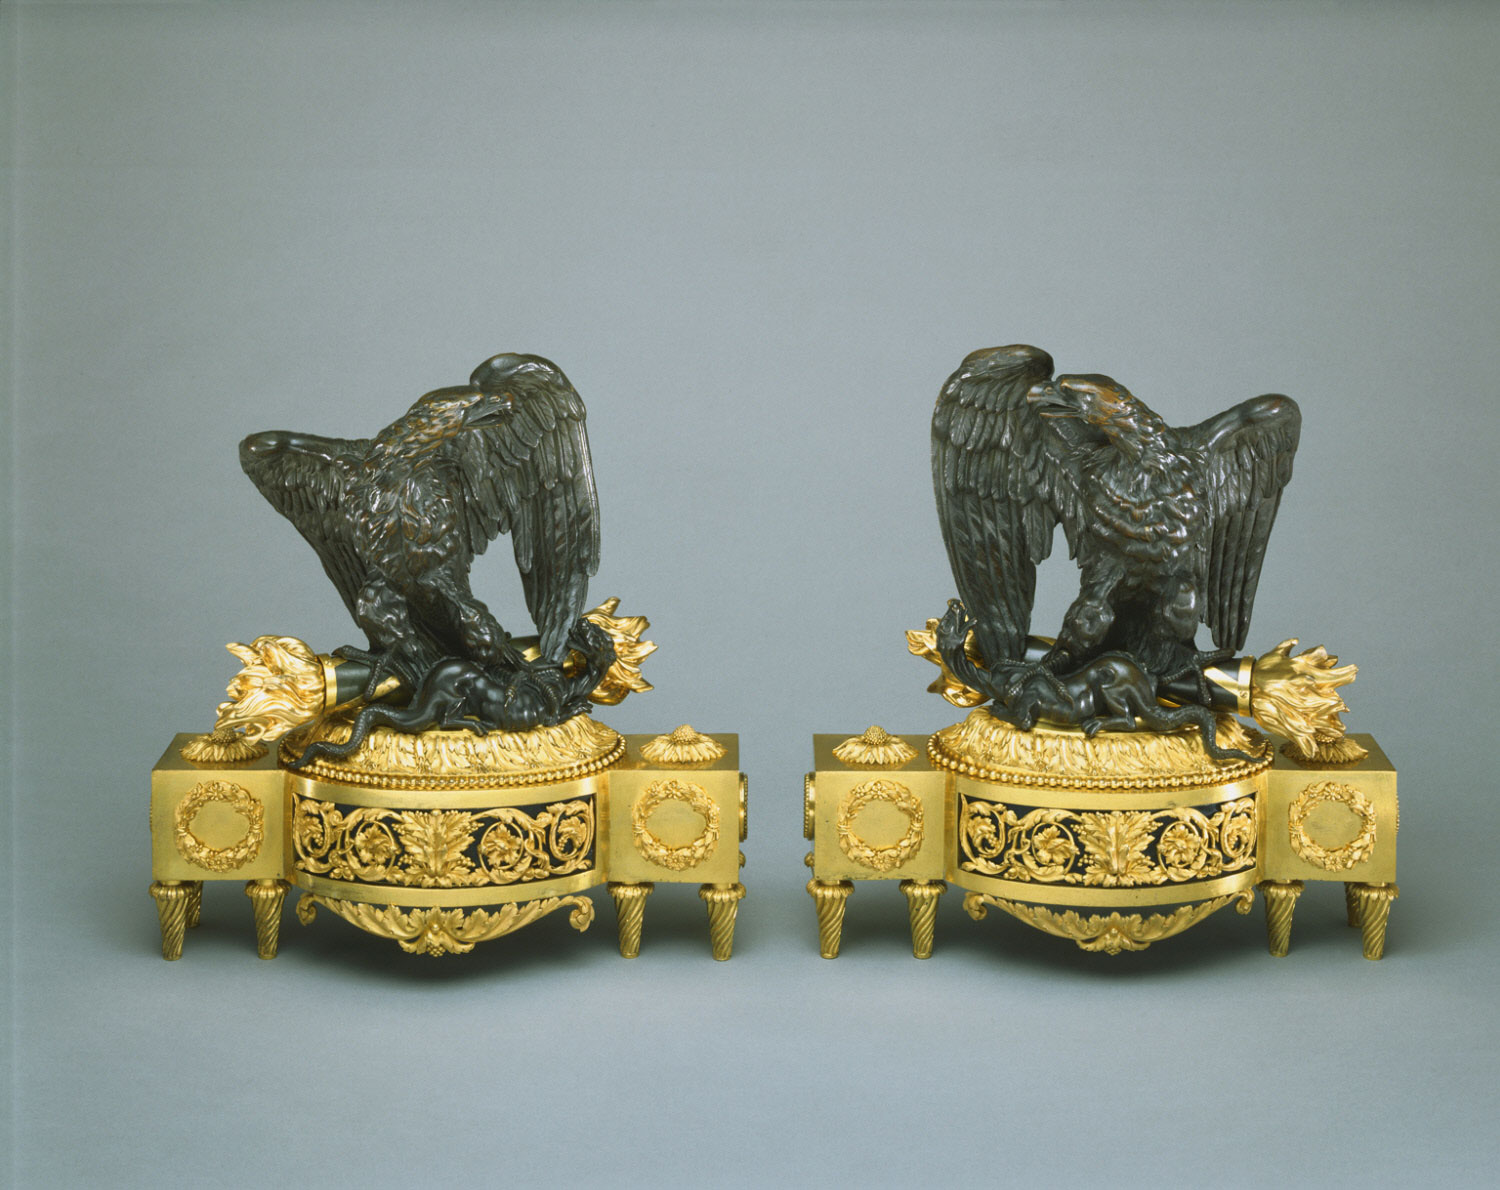 Pair of Andirons in the Form of Eagles